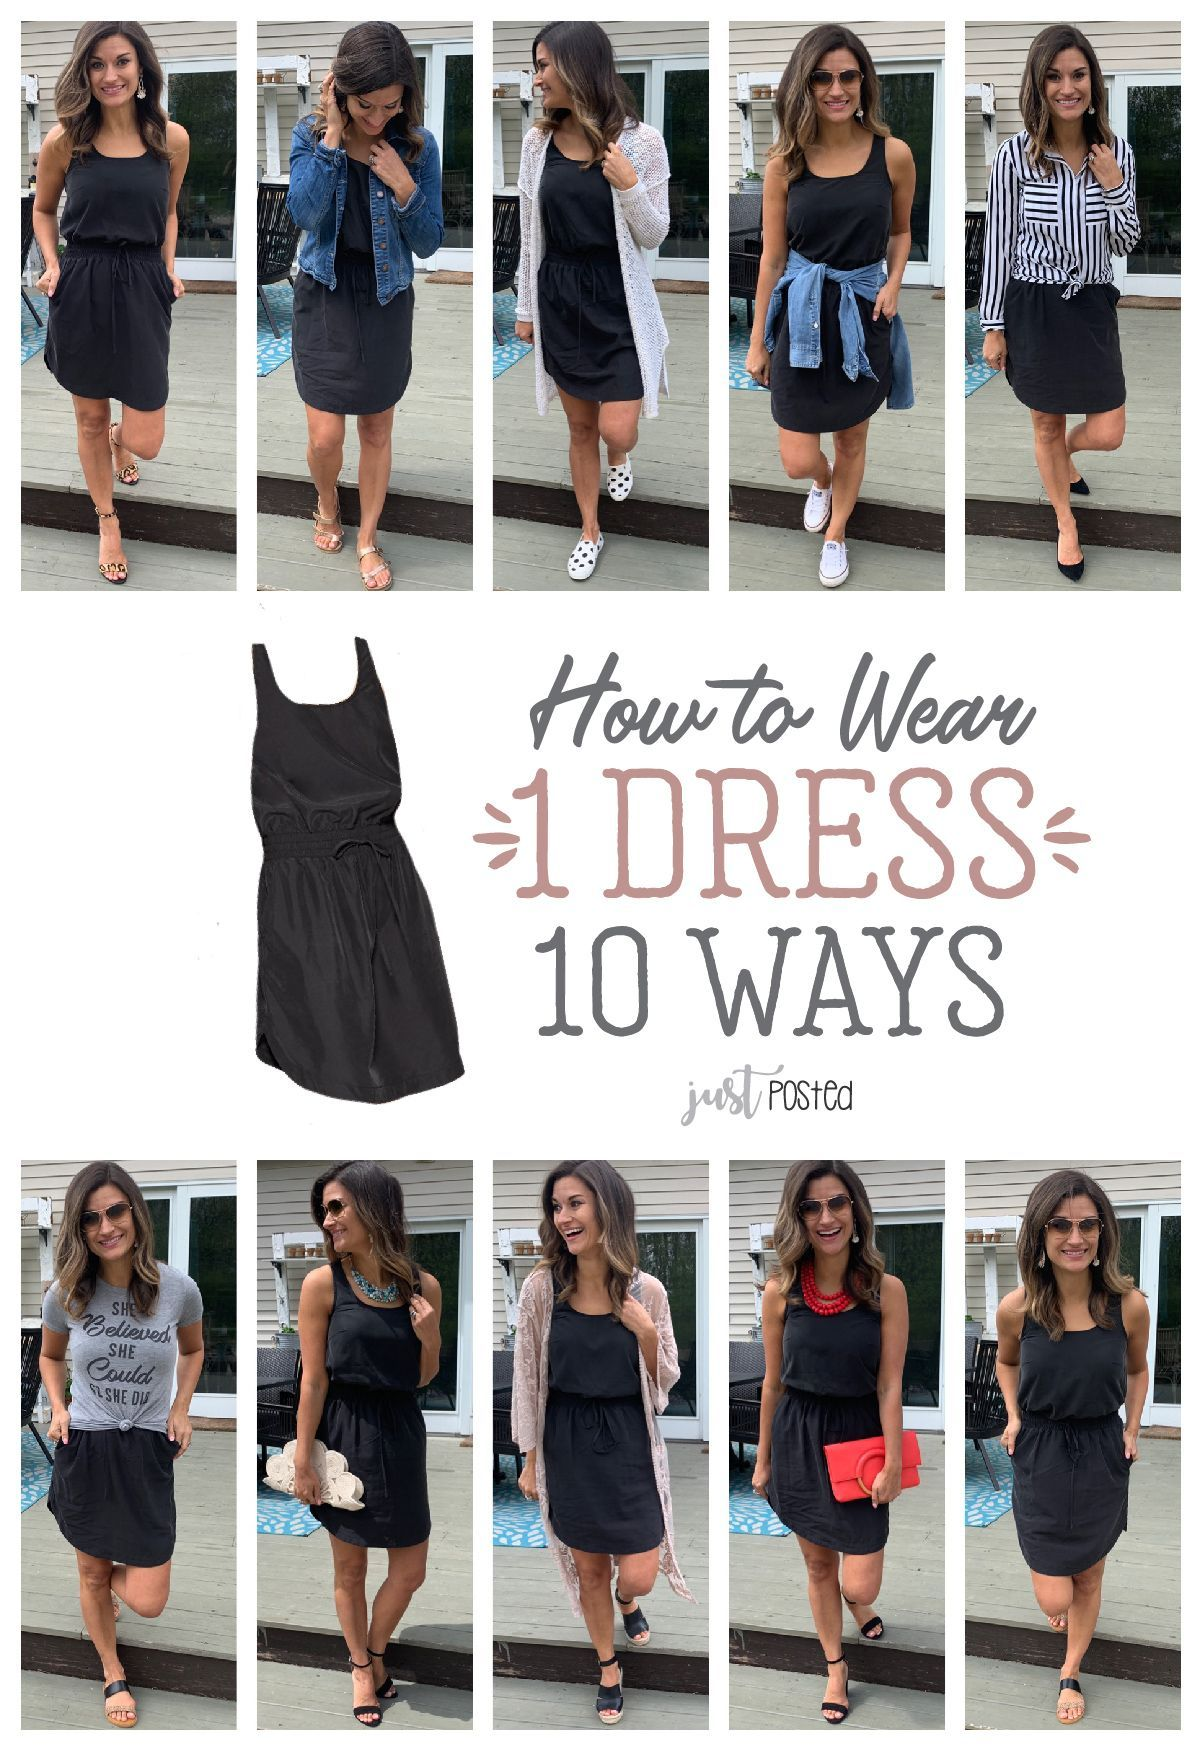 How To Wear And Style 1 Black Dress 10 Different Ways Fashion Casual Dress Outfits Fashion Black Dress Outfit Casual [ 1752 x 1201 Pixel ]